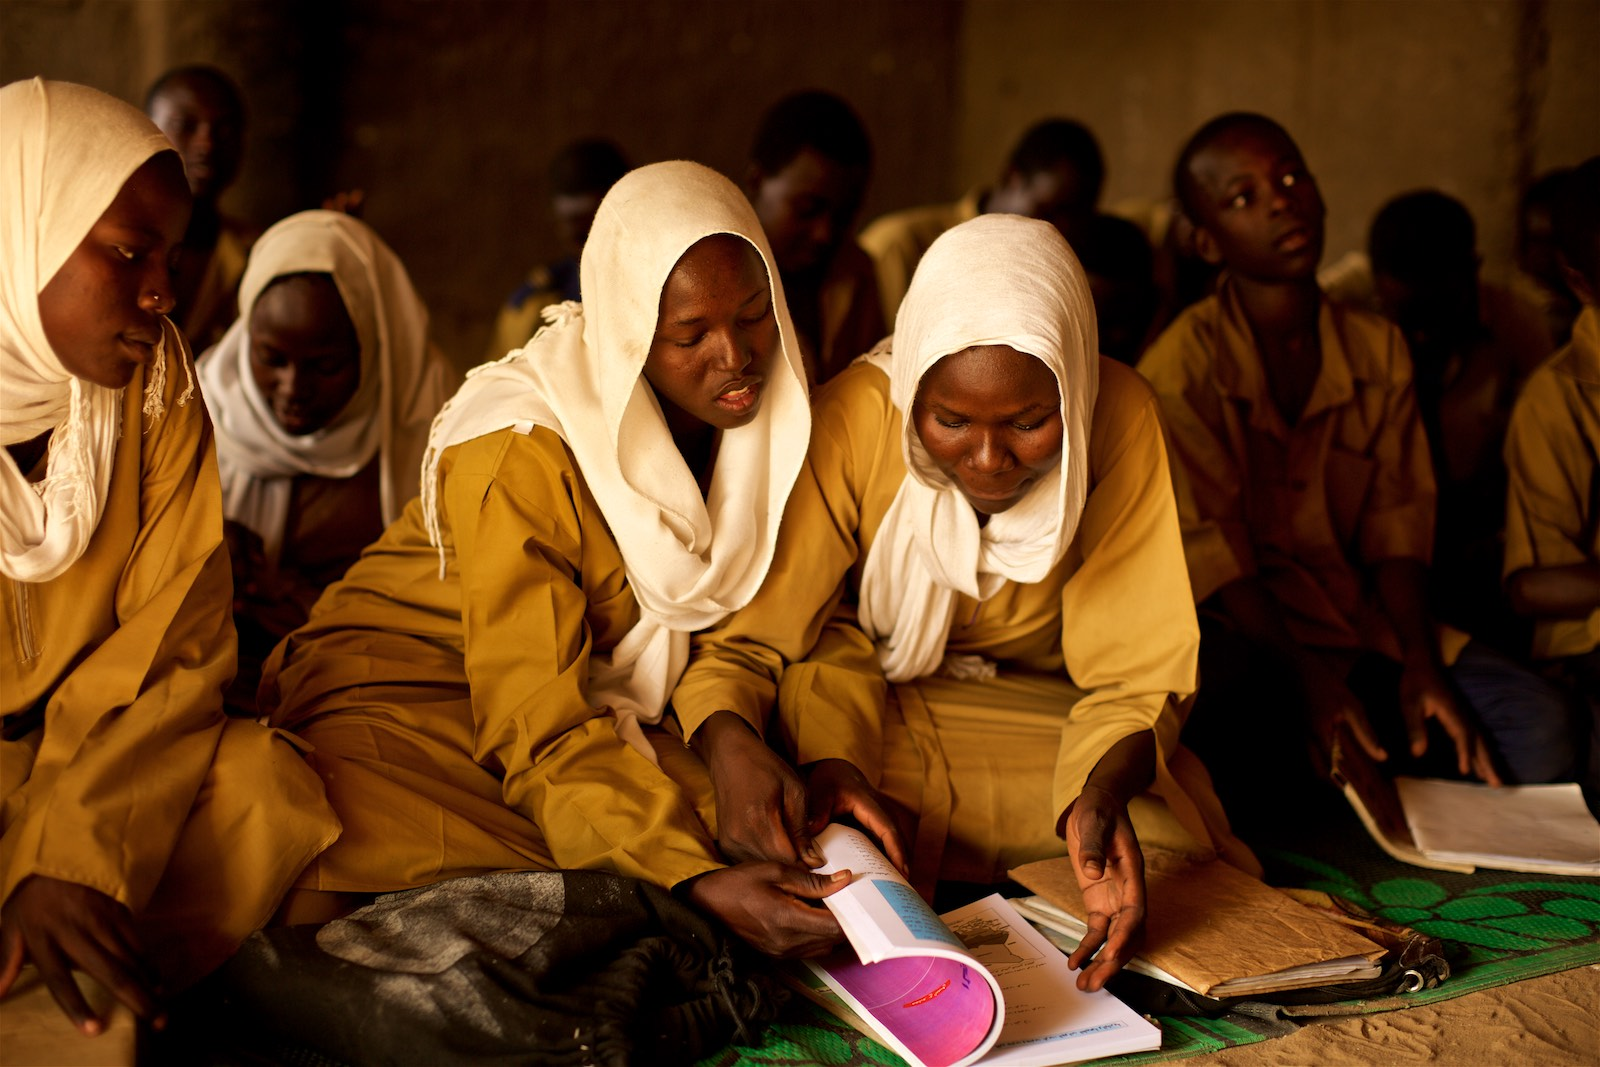 denis-bosnic-chad-school-jrs-jesuit-refugee-service-students-education-mercy-in-motion-5.jpg